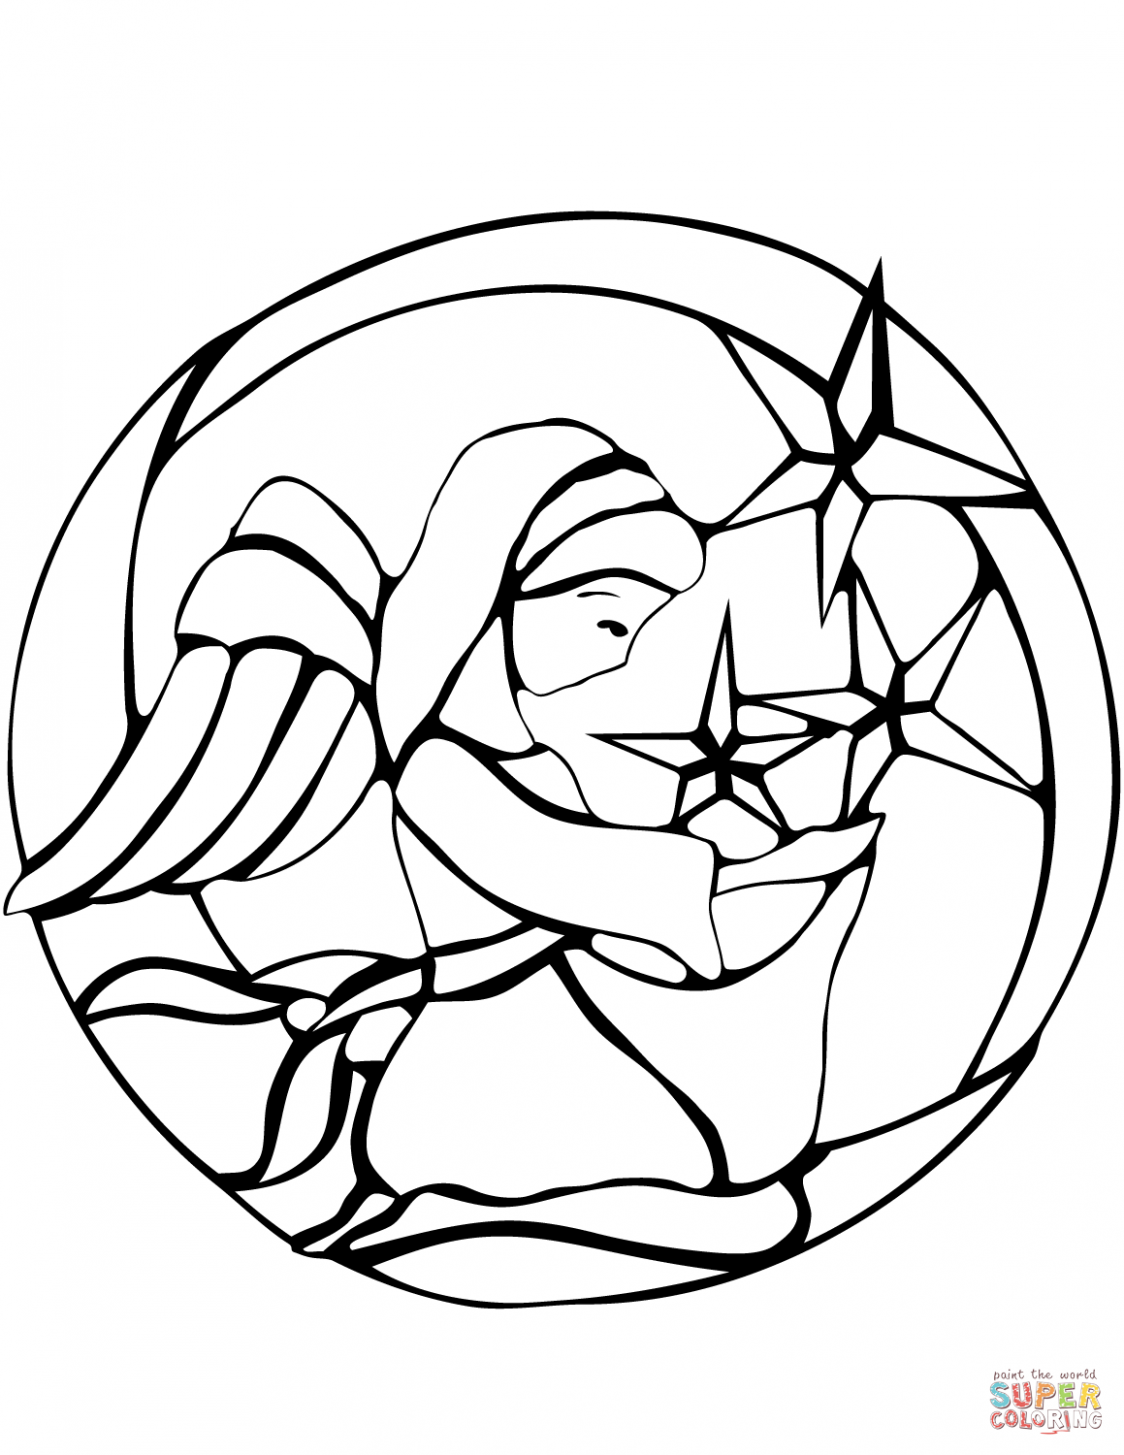 Stained Glass coloring pages | Free Coloring Pages – Christmas Coloring Pages Stained Glass